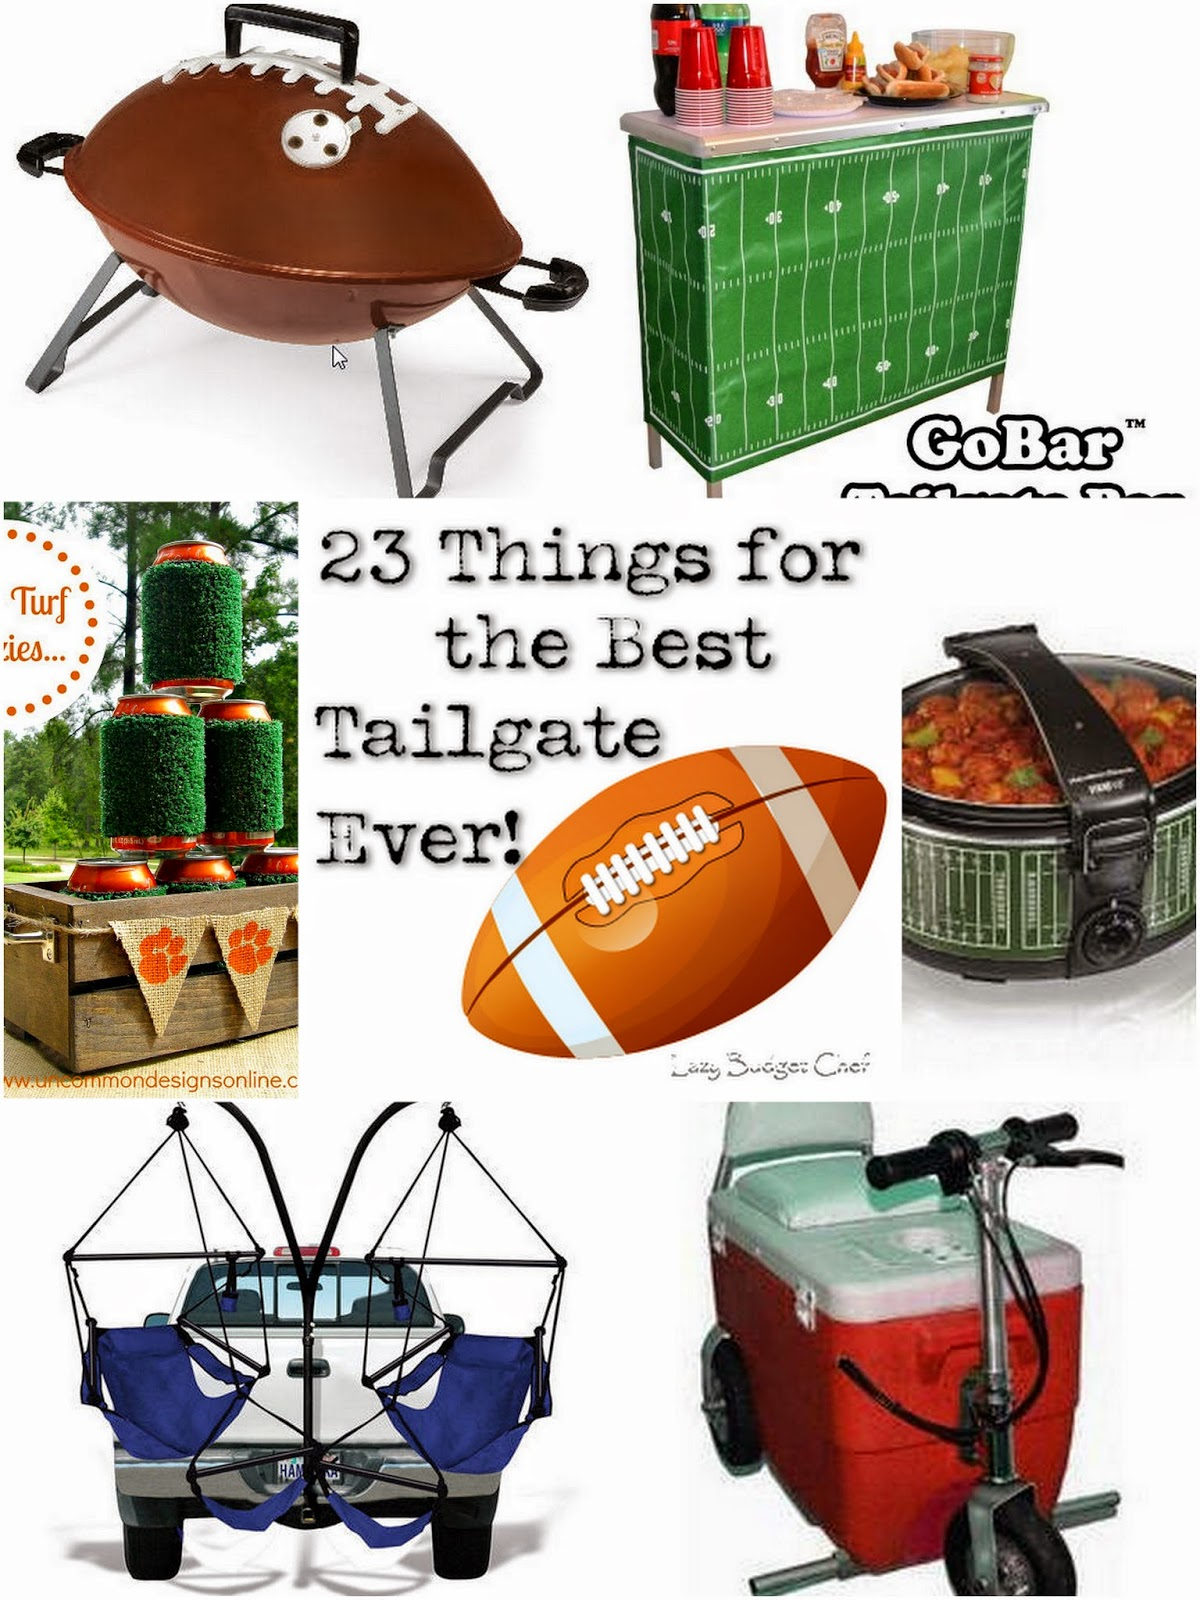 Tailgate Party Gear: Speakers, Coolers & More - DealTown, US - It doesn't matter if you win or lose: Pre-gaming should be fun.